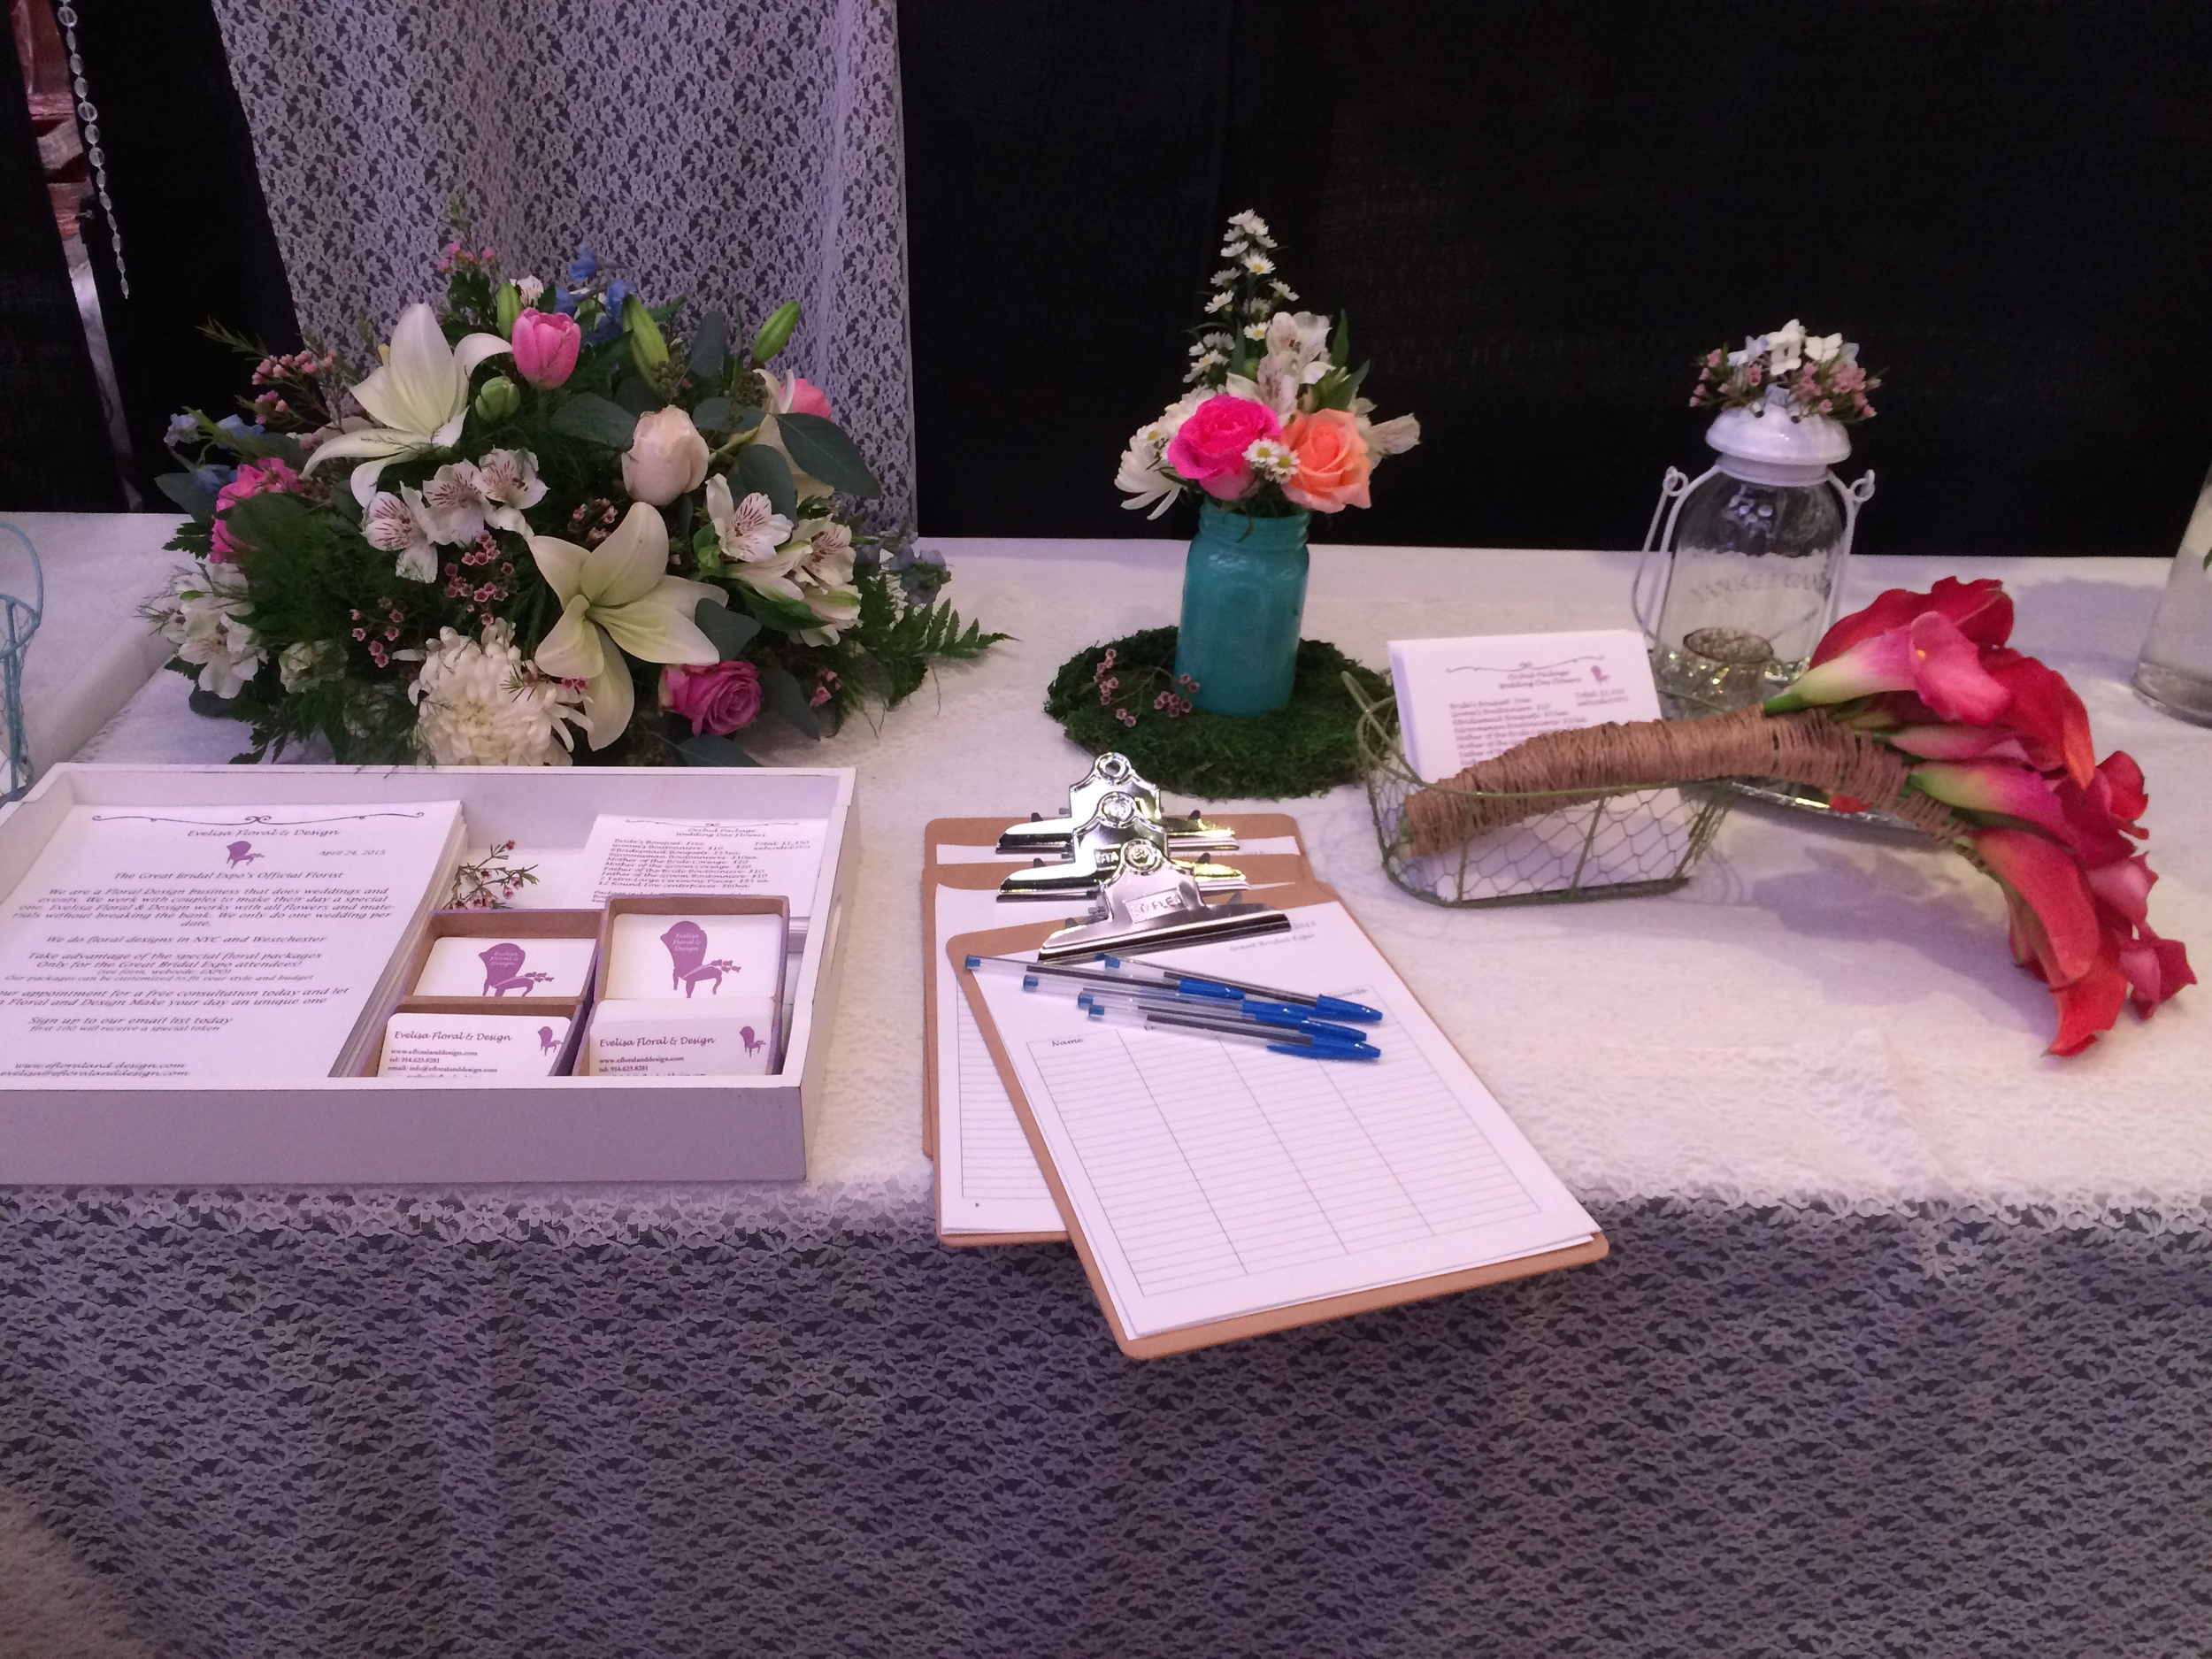 Our setup with all our materials.More bouquets and flowers centerpieces.